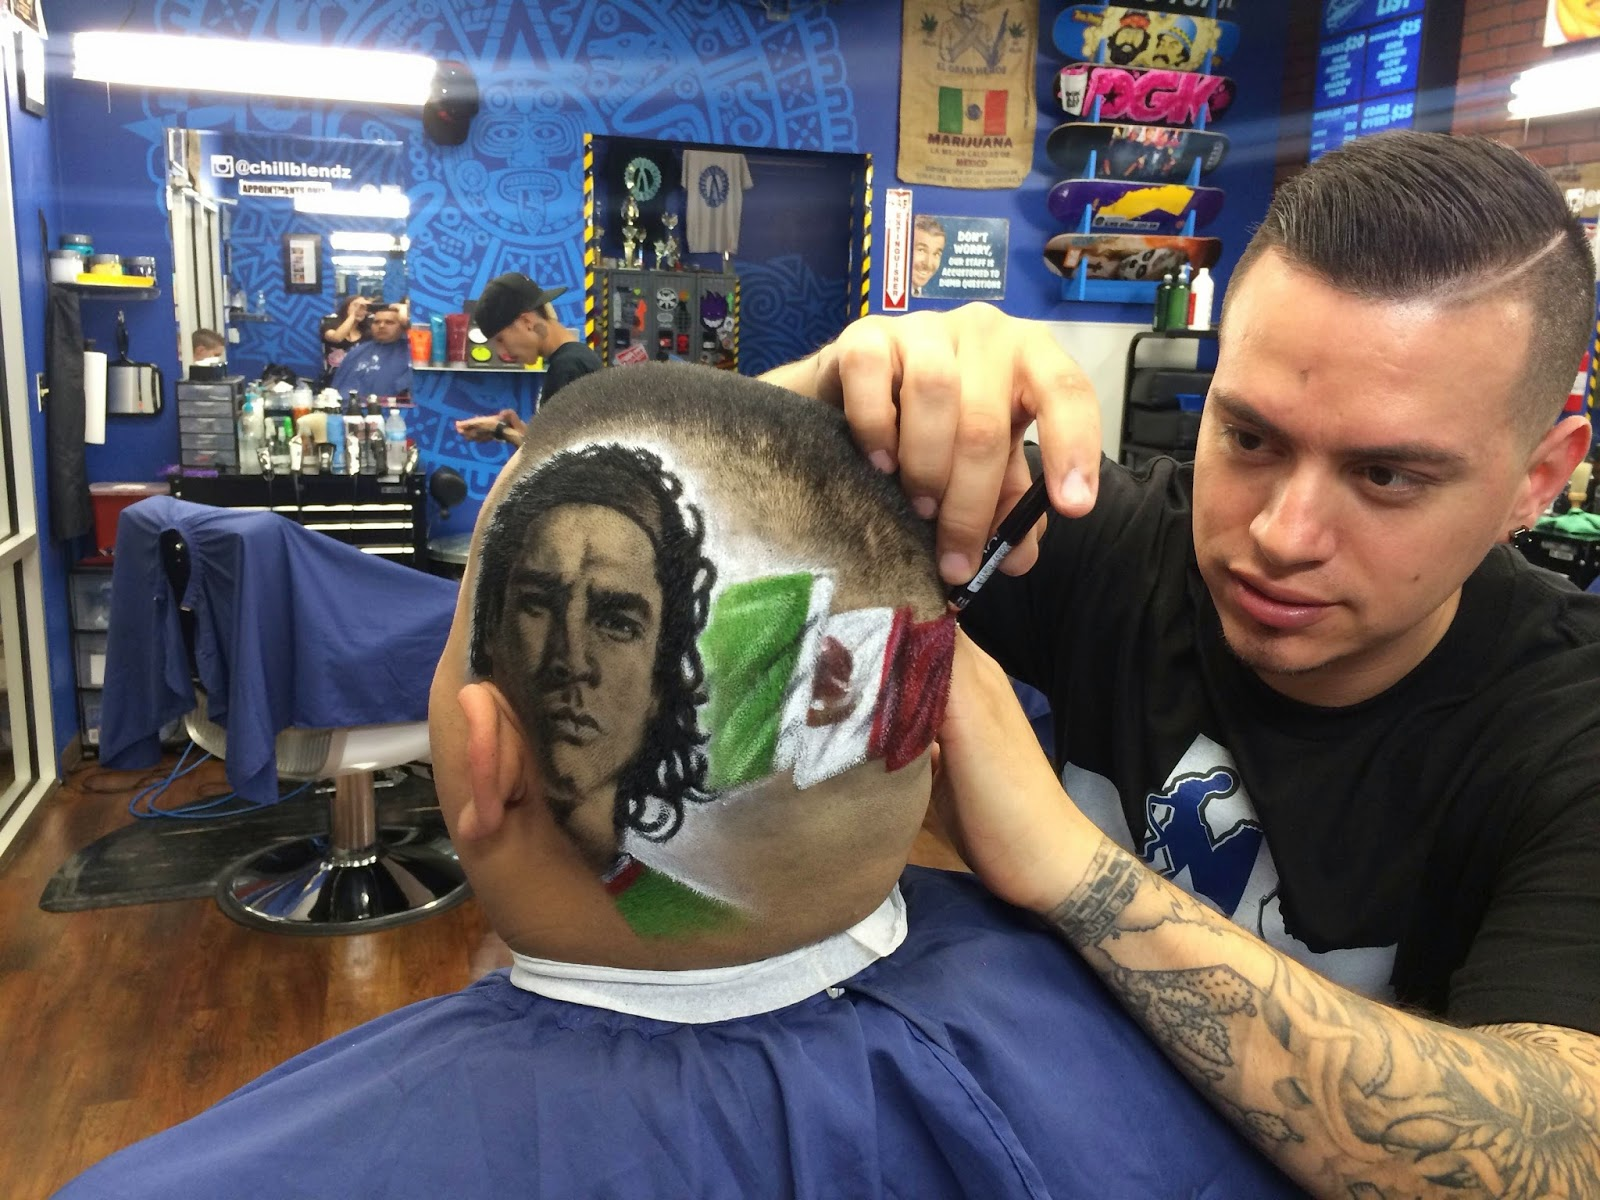 Shaving your idol on the back of your head